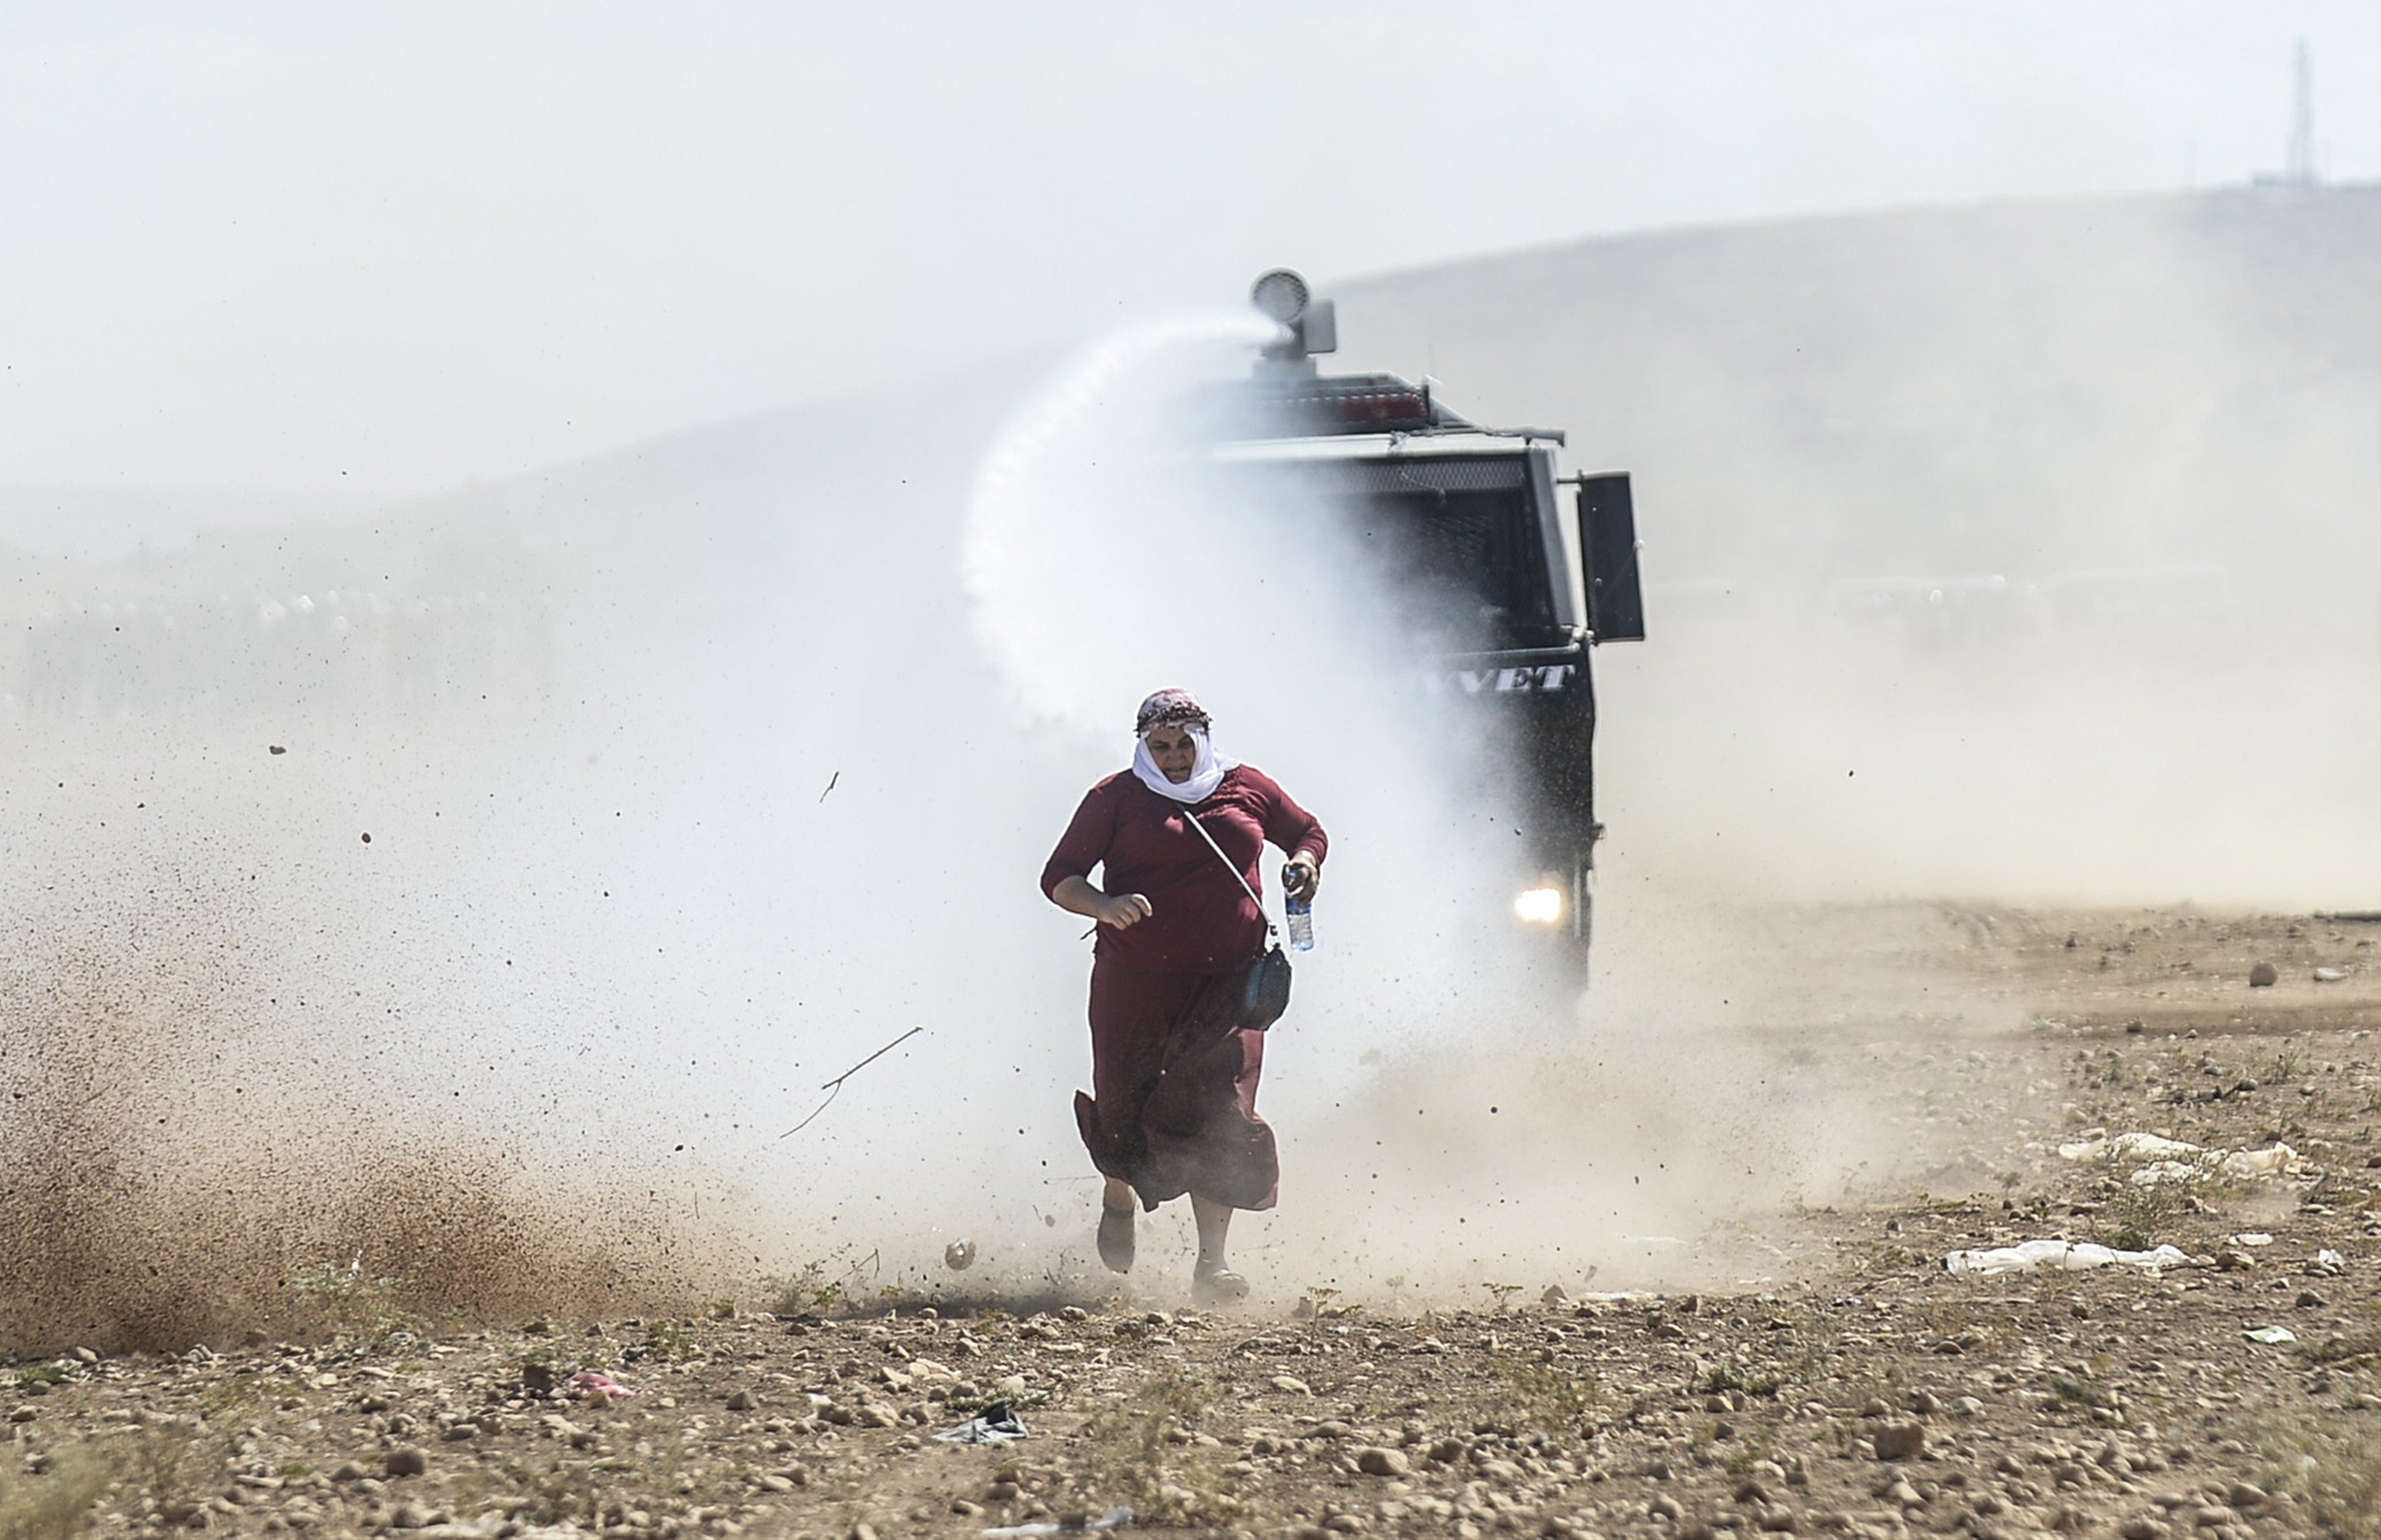 A Kurdish woman runs away from a water cannon near the Syrian border after Turkish authorities temporarily closed the border at the southeastern town of Suruc in Sanliurfa province, on Sept. 22, 2014.